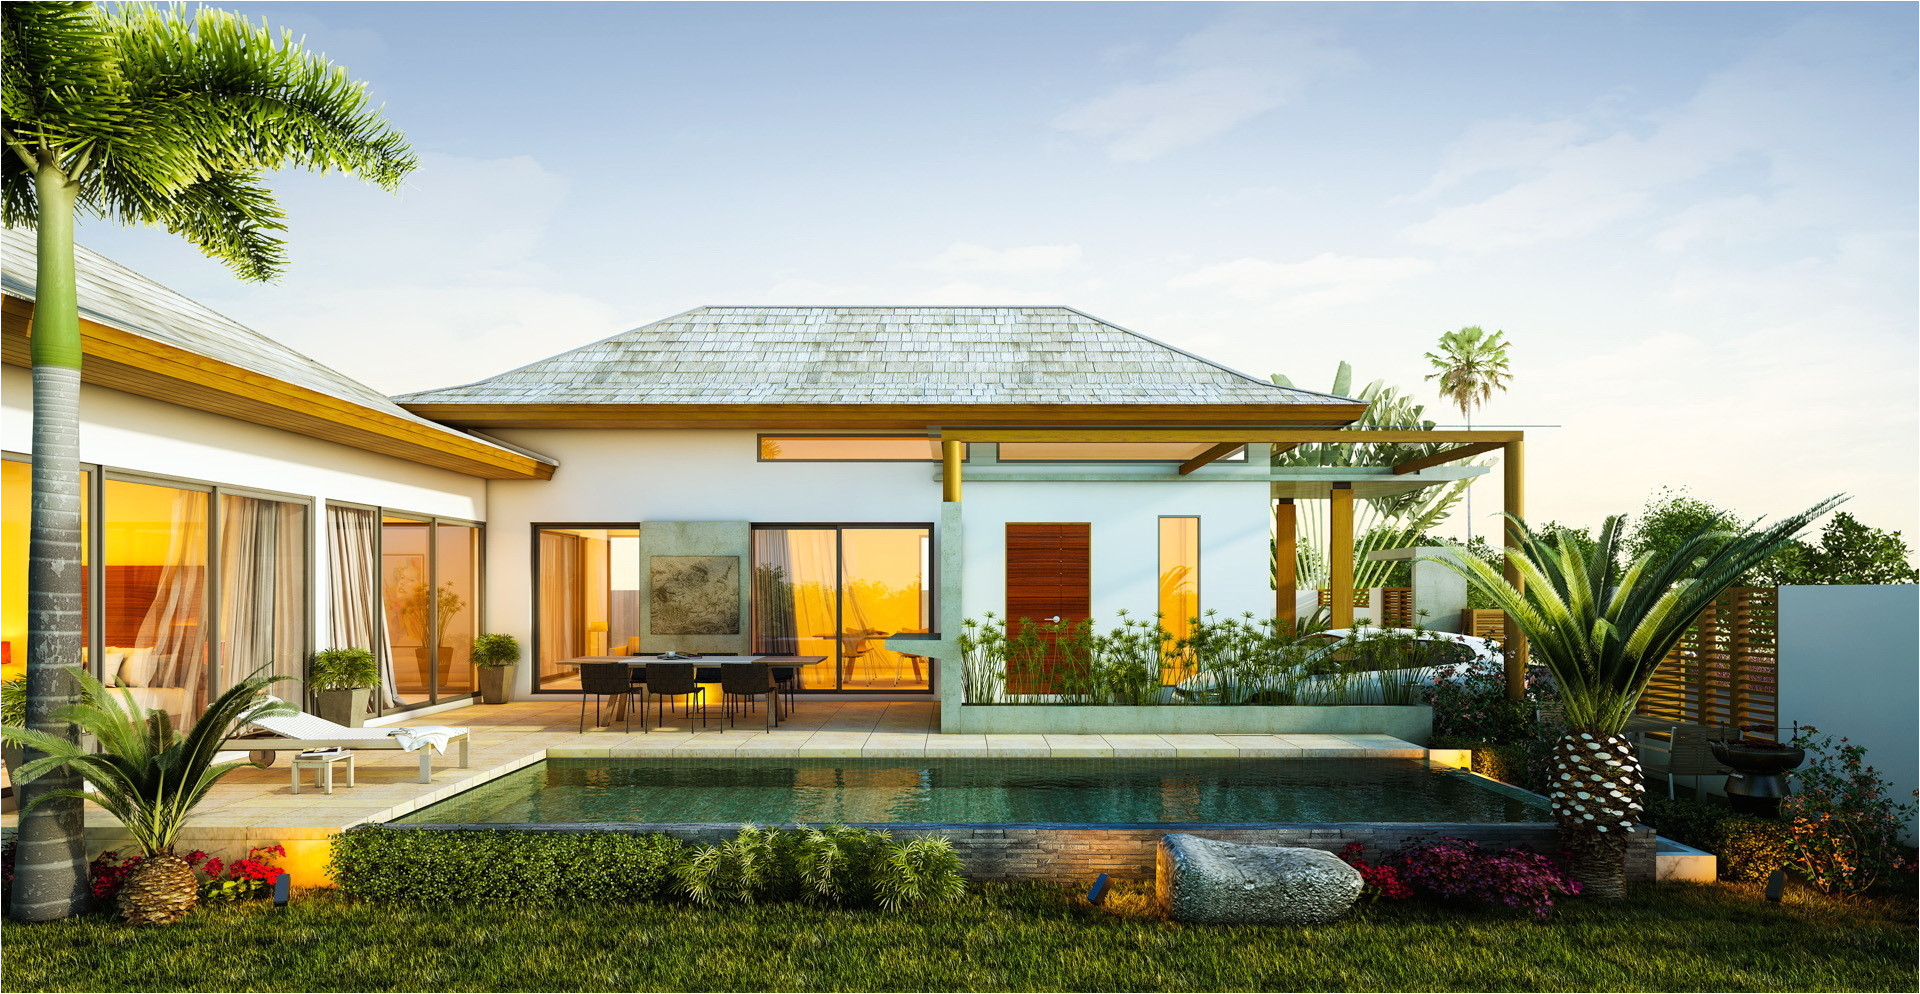 alluring tropical home with modern design and the touch of nature elements